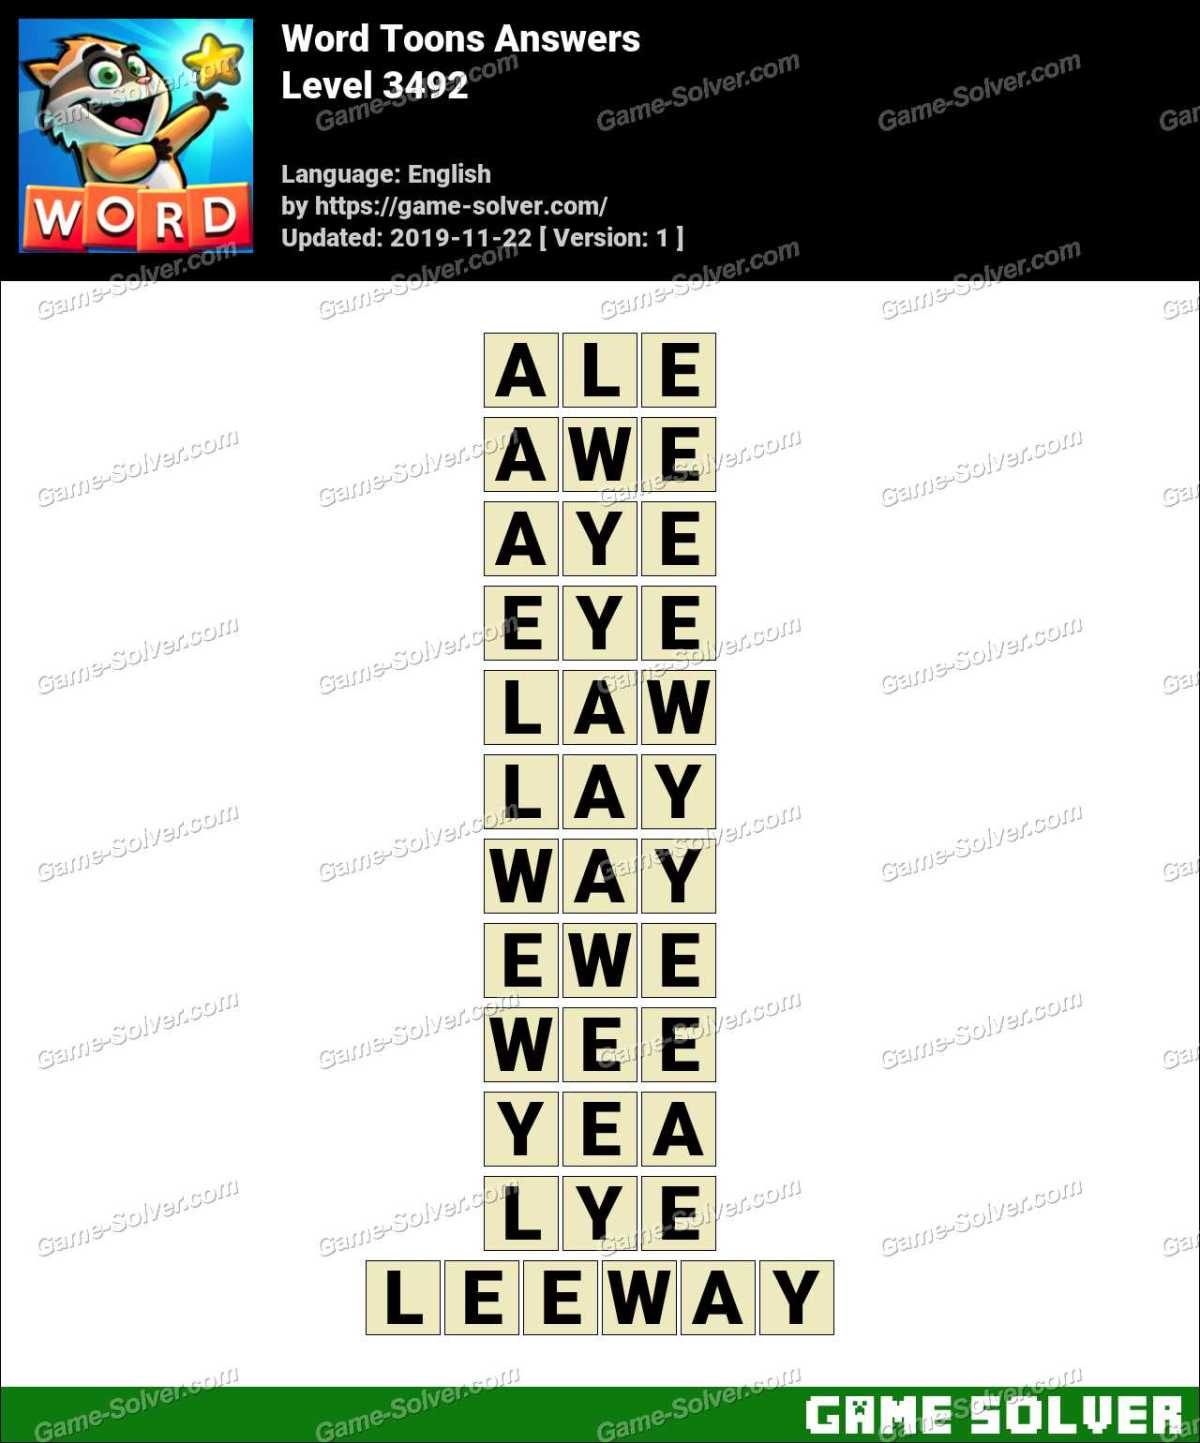 Word Toons Level 3492 Answers